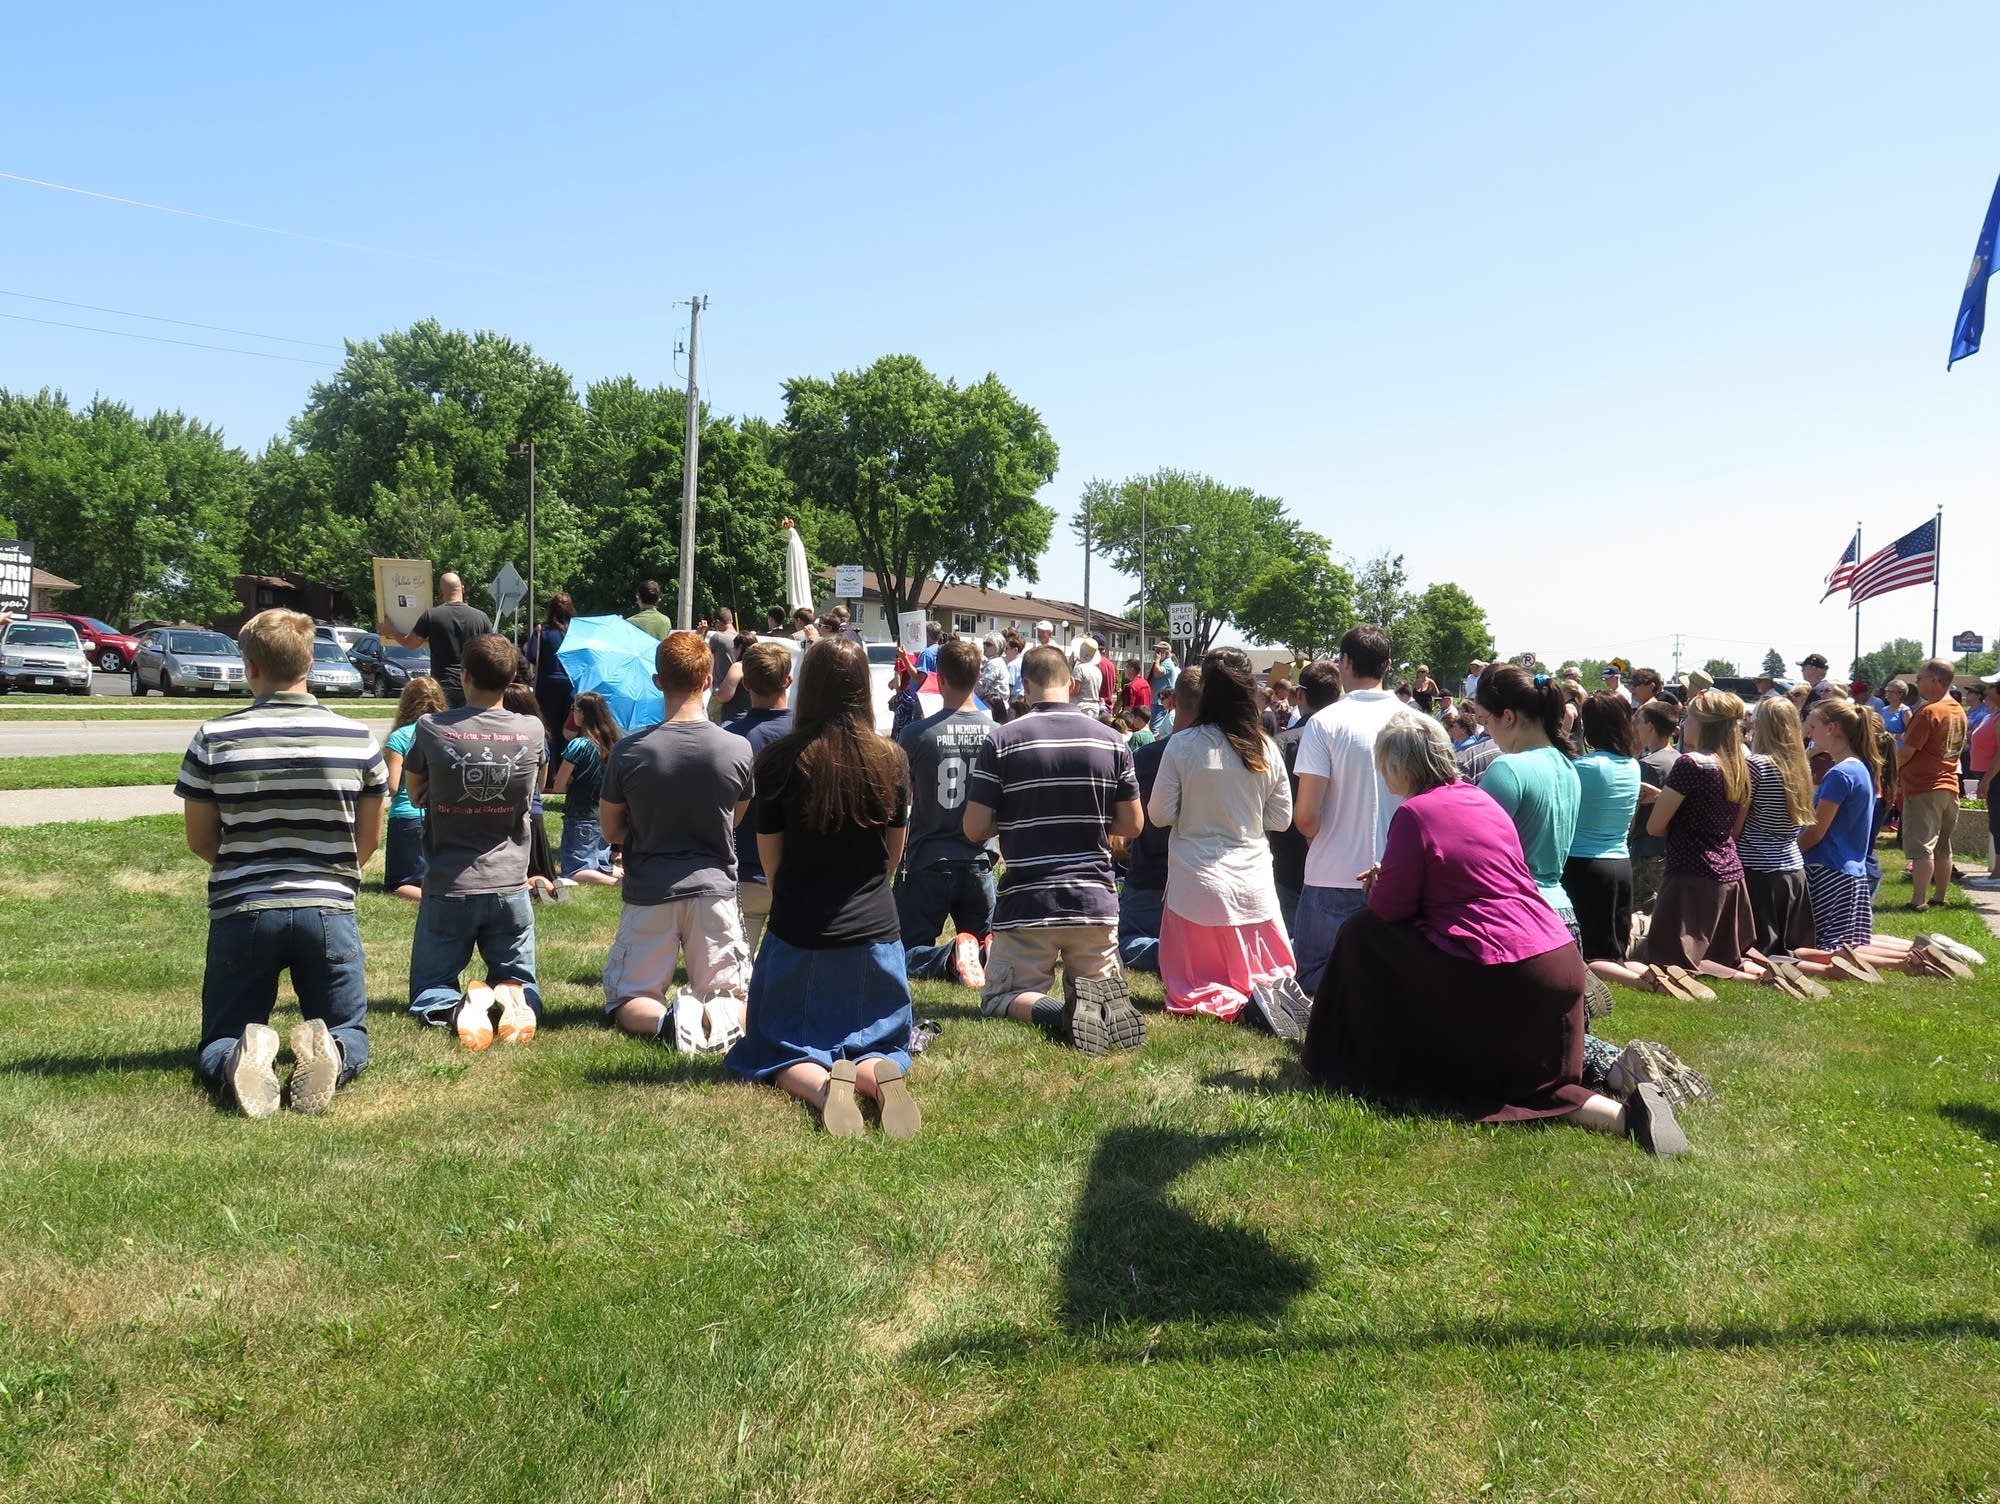 Protesters kneel to pray during a rally against a future satanic monument.